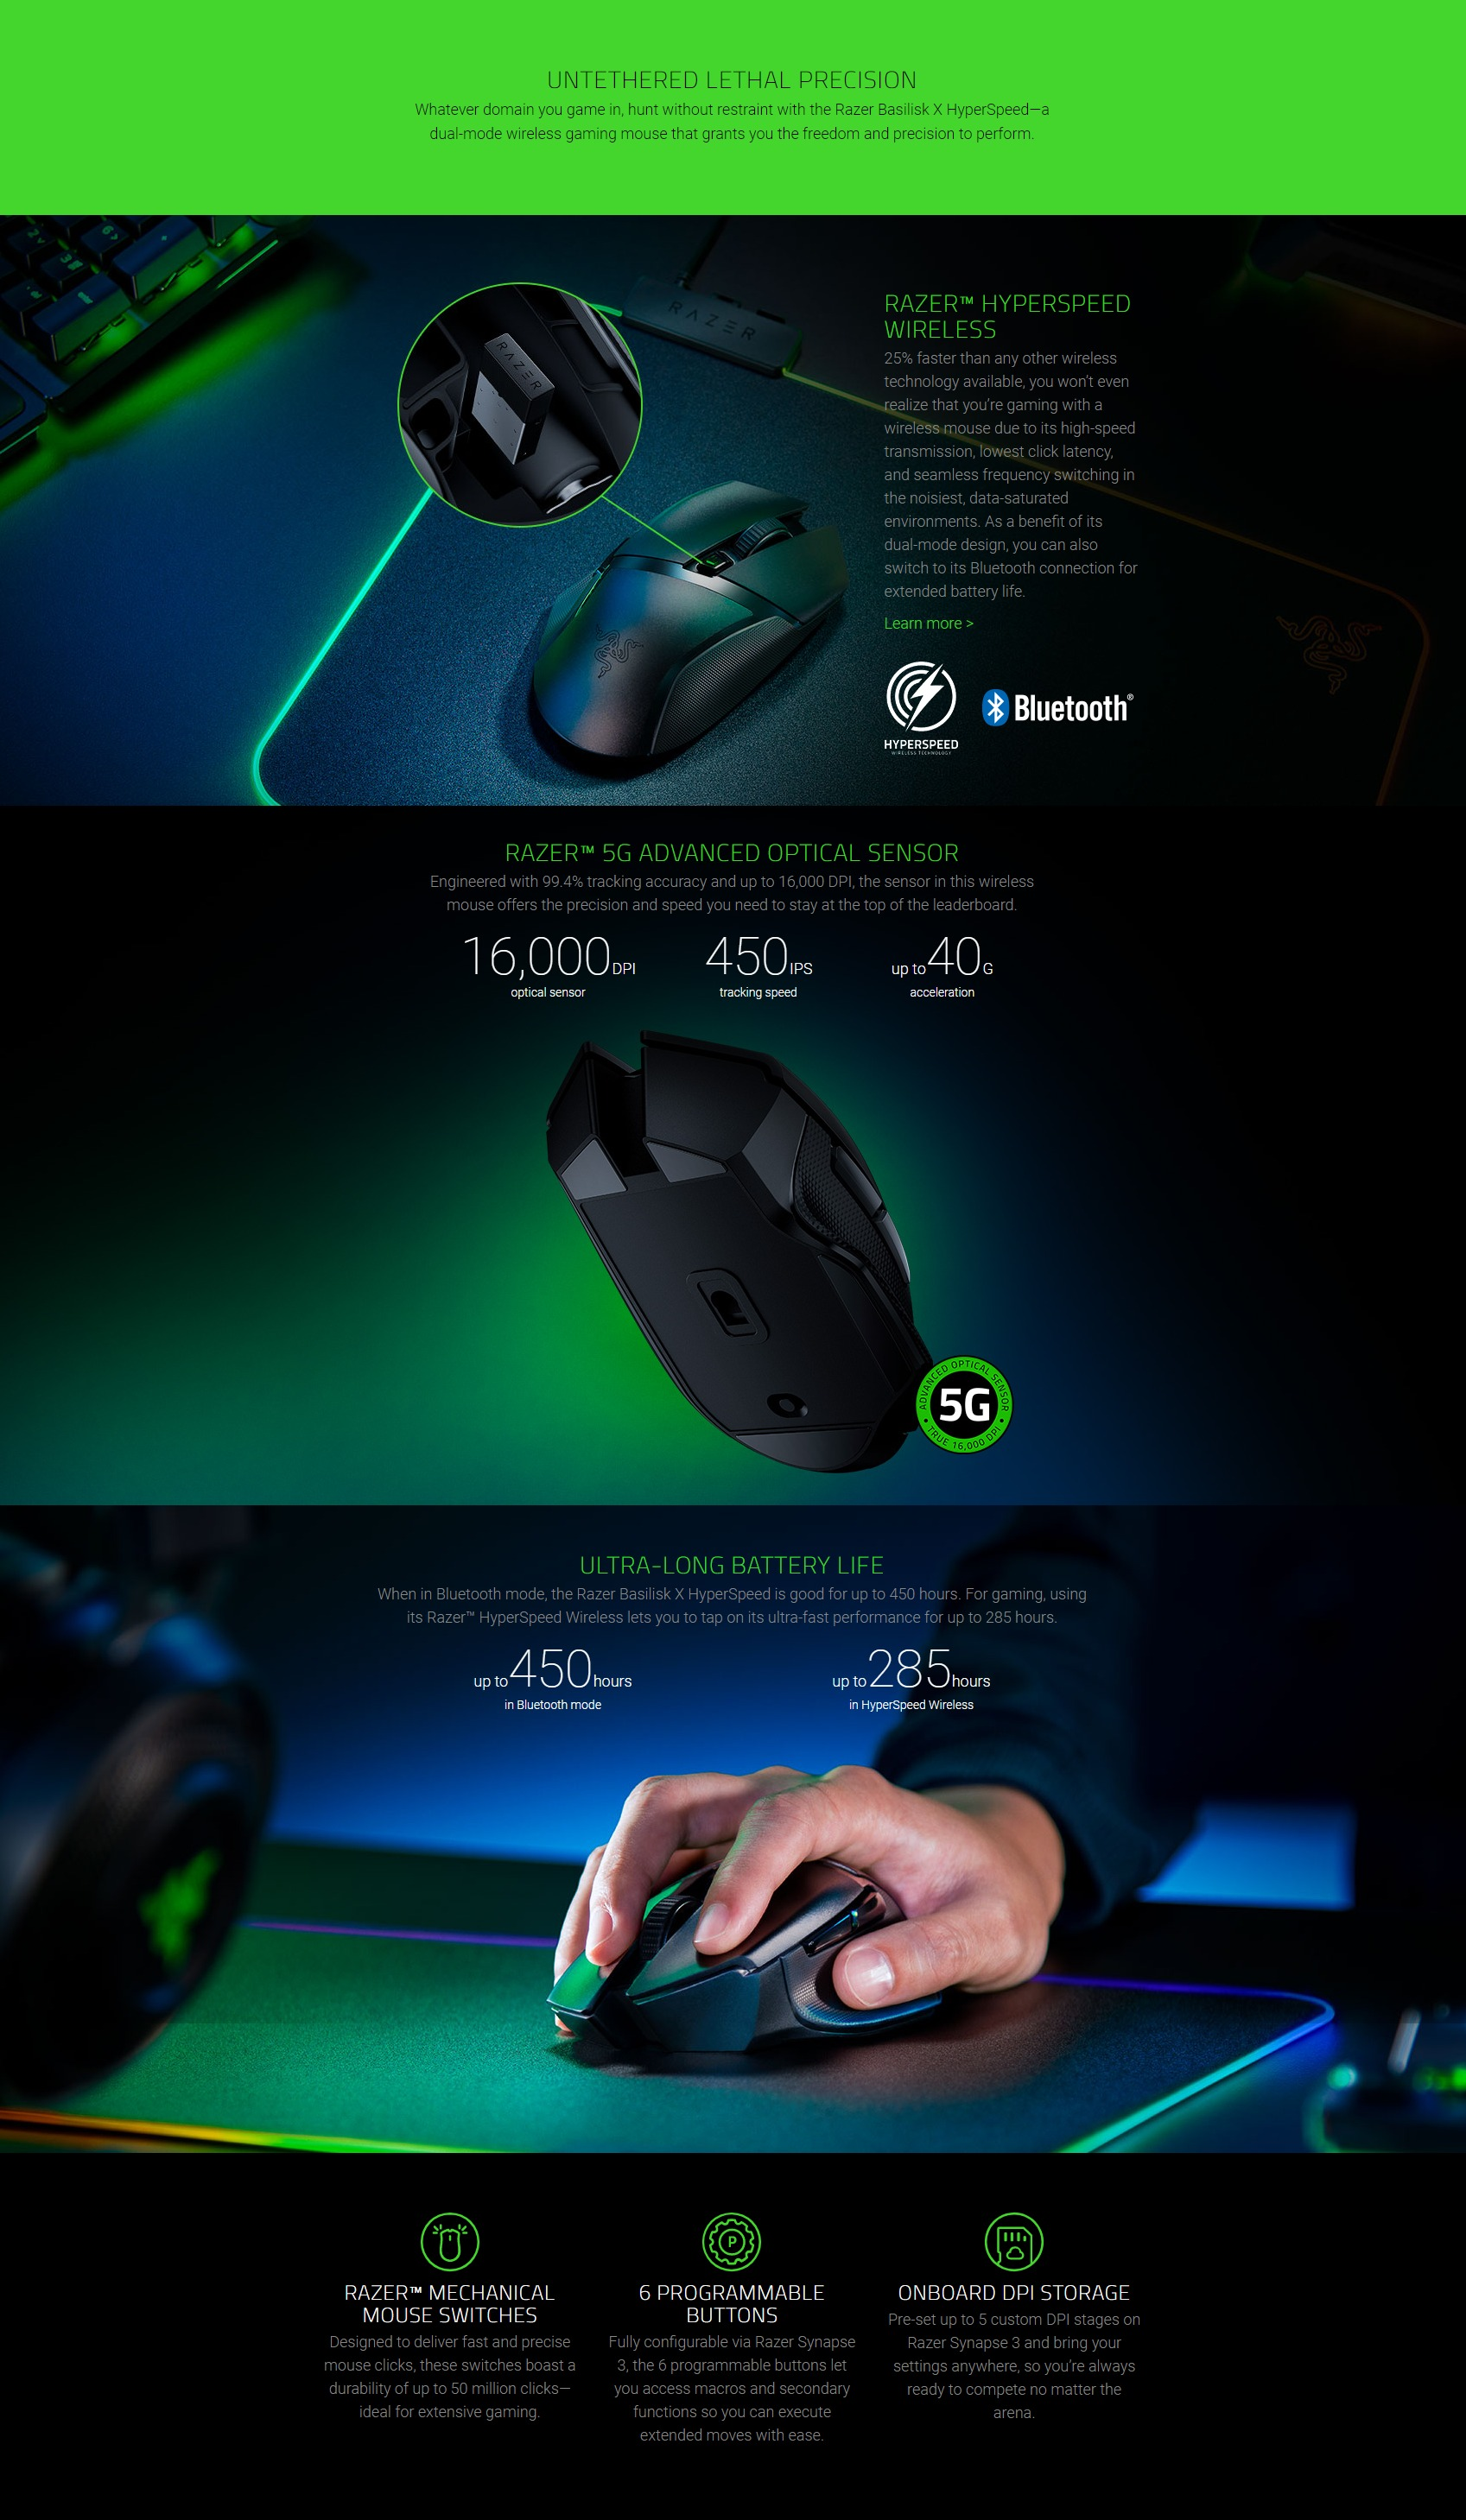 A large marketing image providing additional information about the product Razer Basilisk X HyperSpeed - Wireless Ergonomic Gaming Mouse - Additional alt info not provided